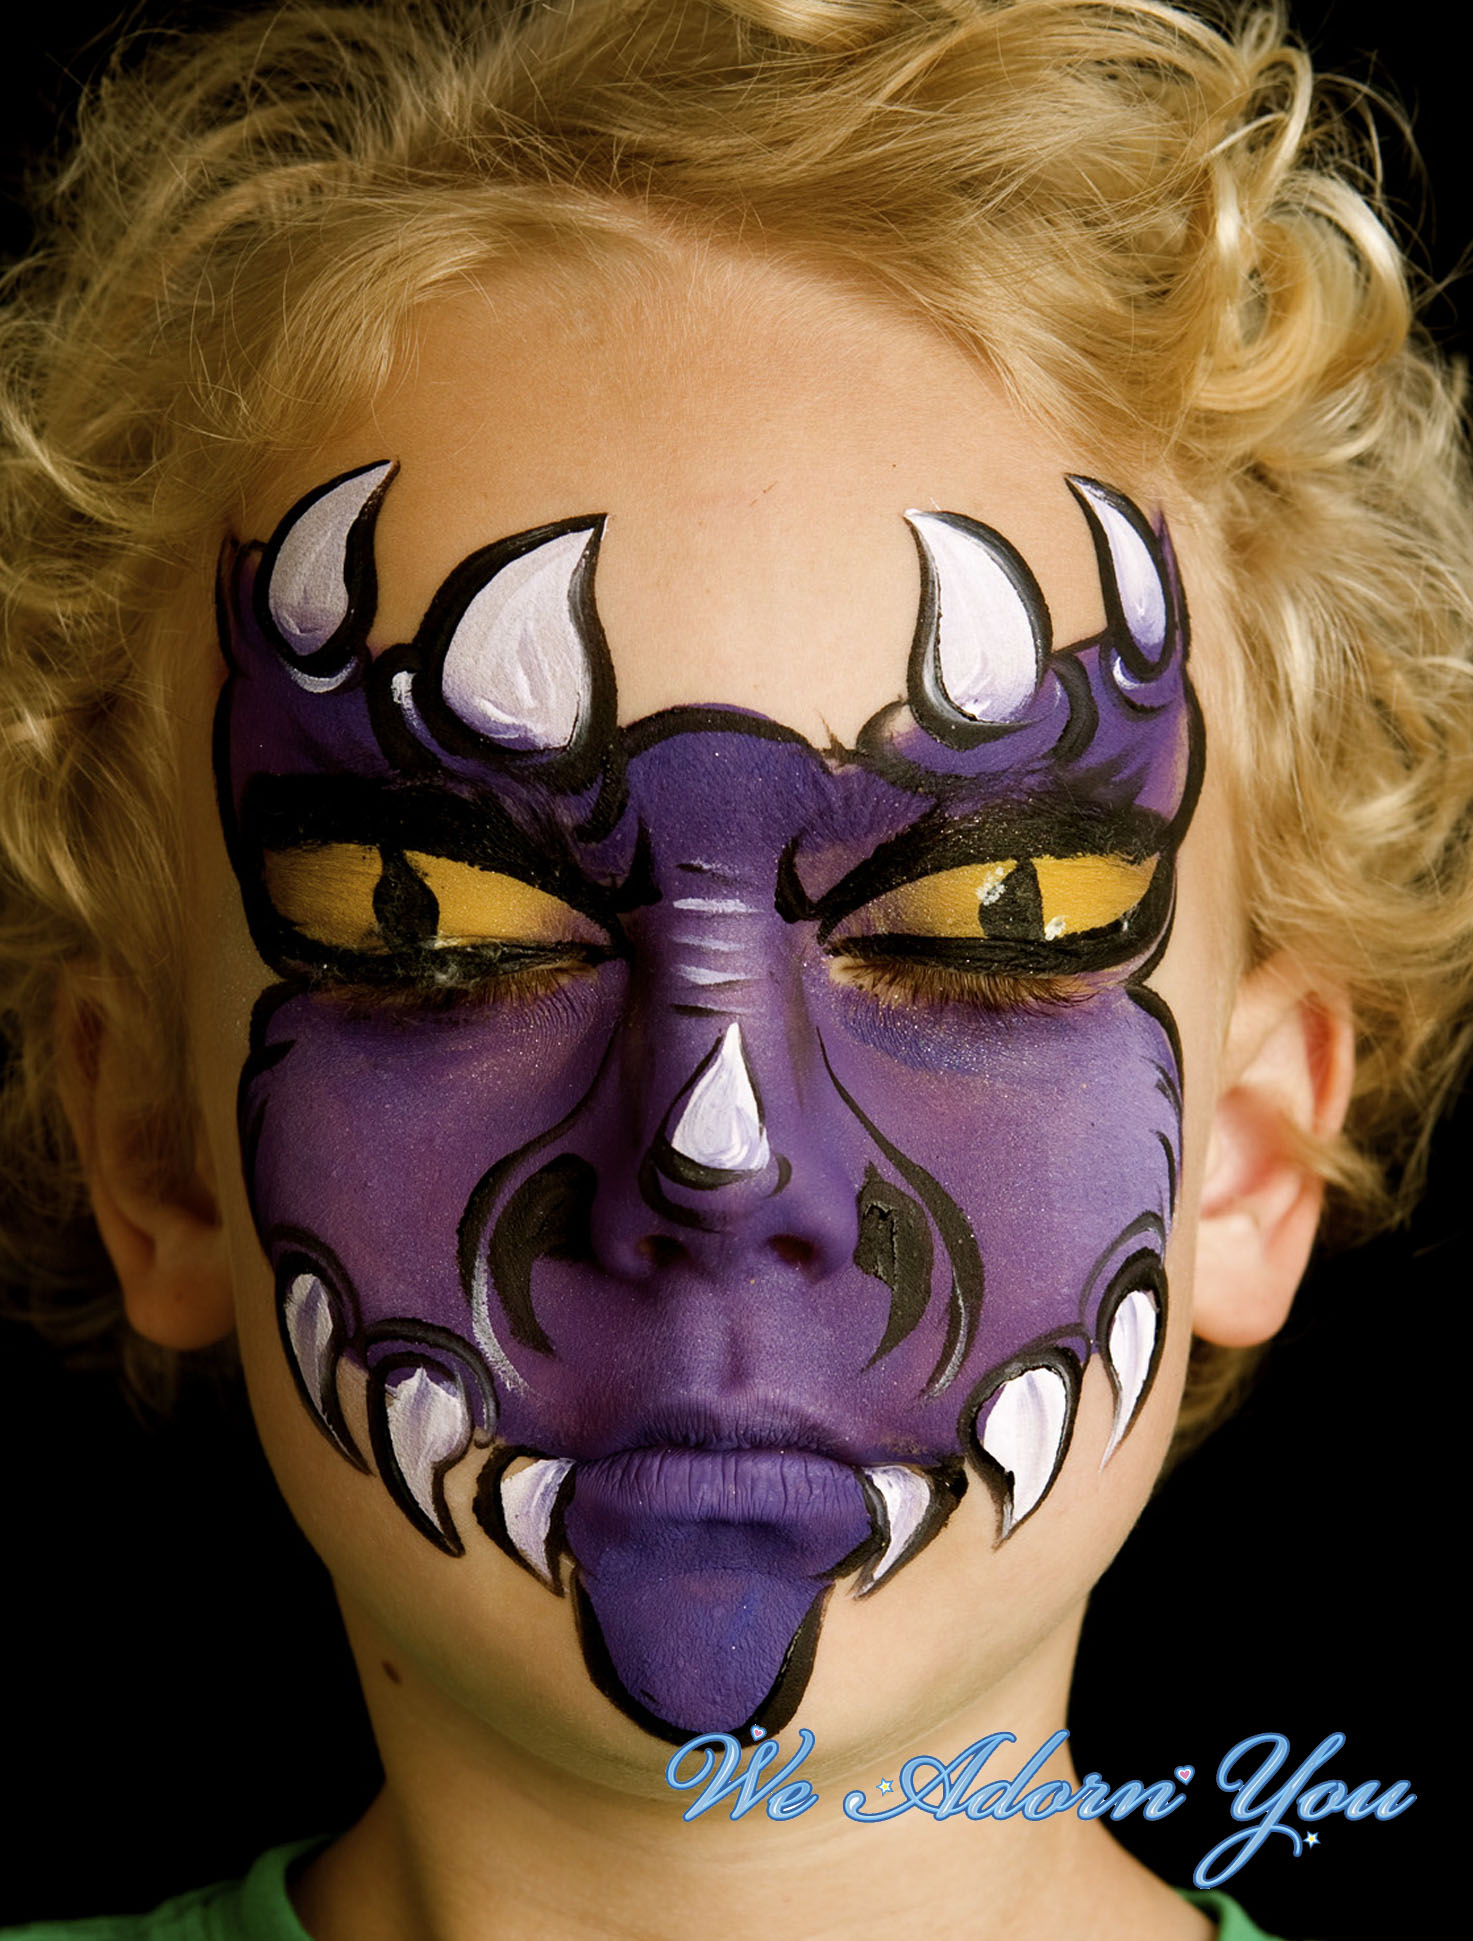 Face Painting Dragon - We Adorn You.jpg